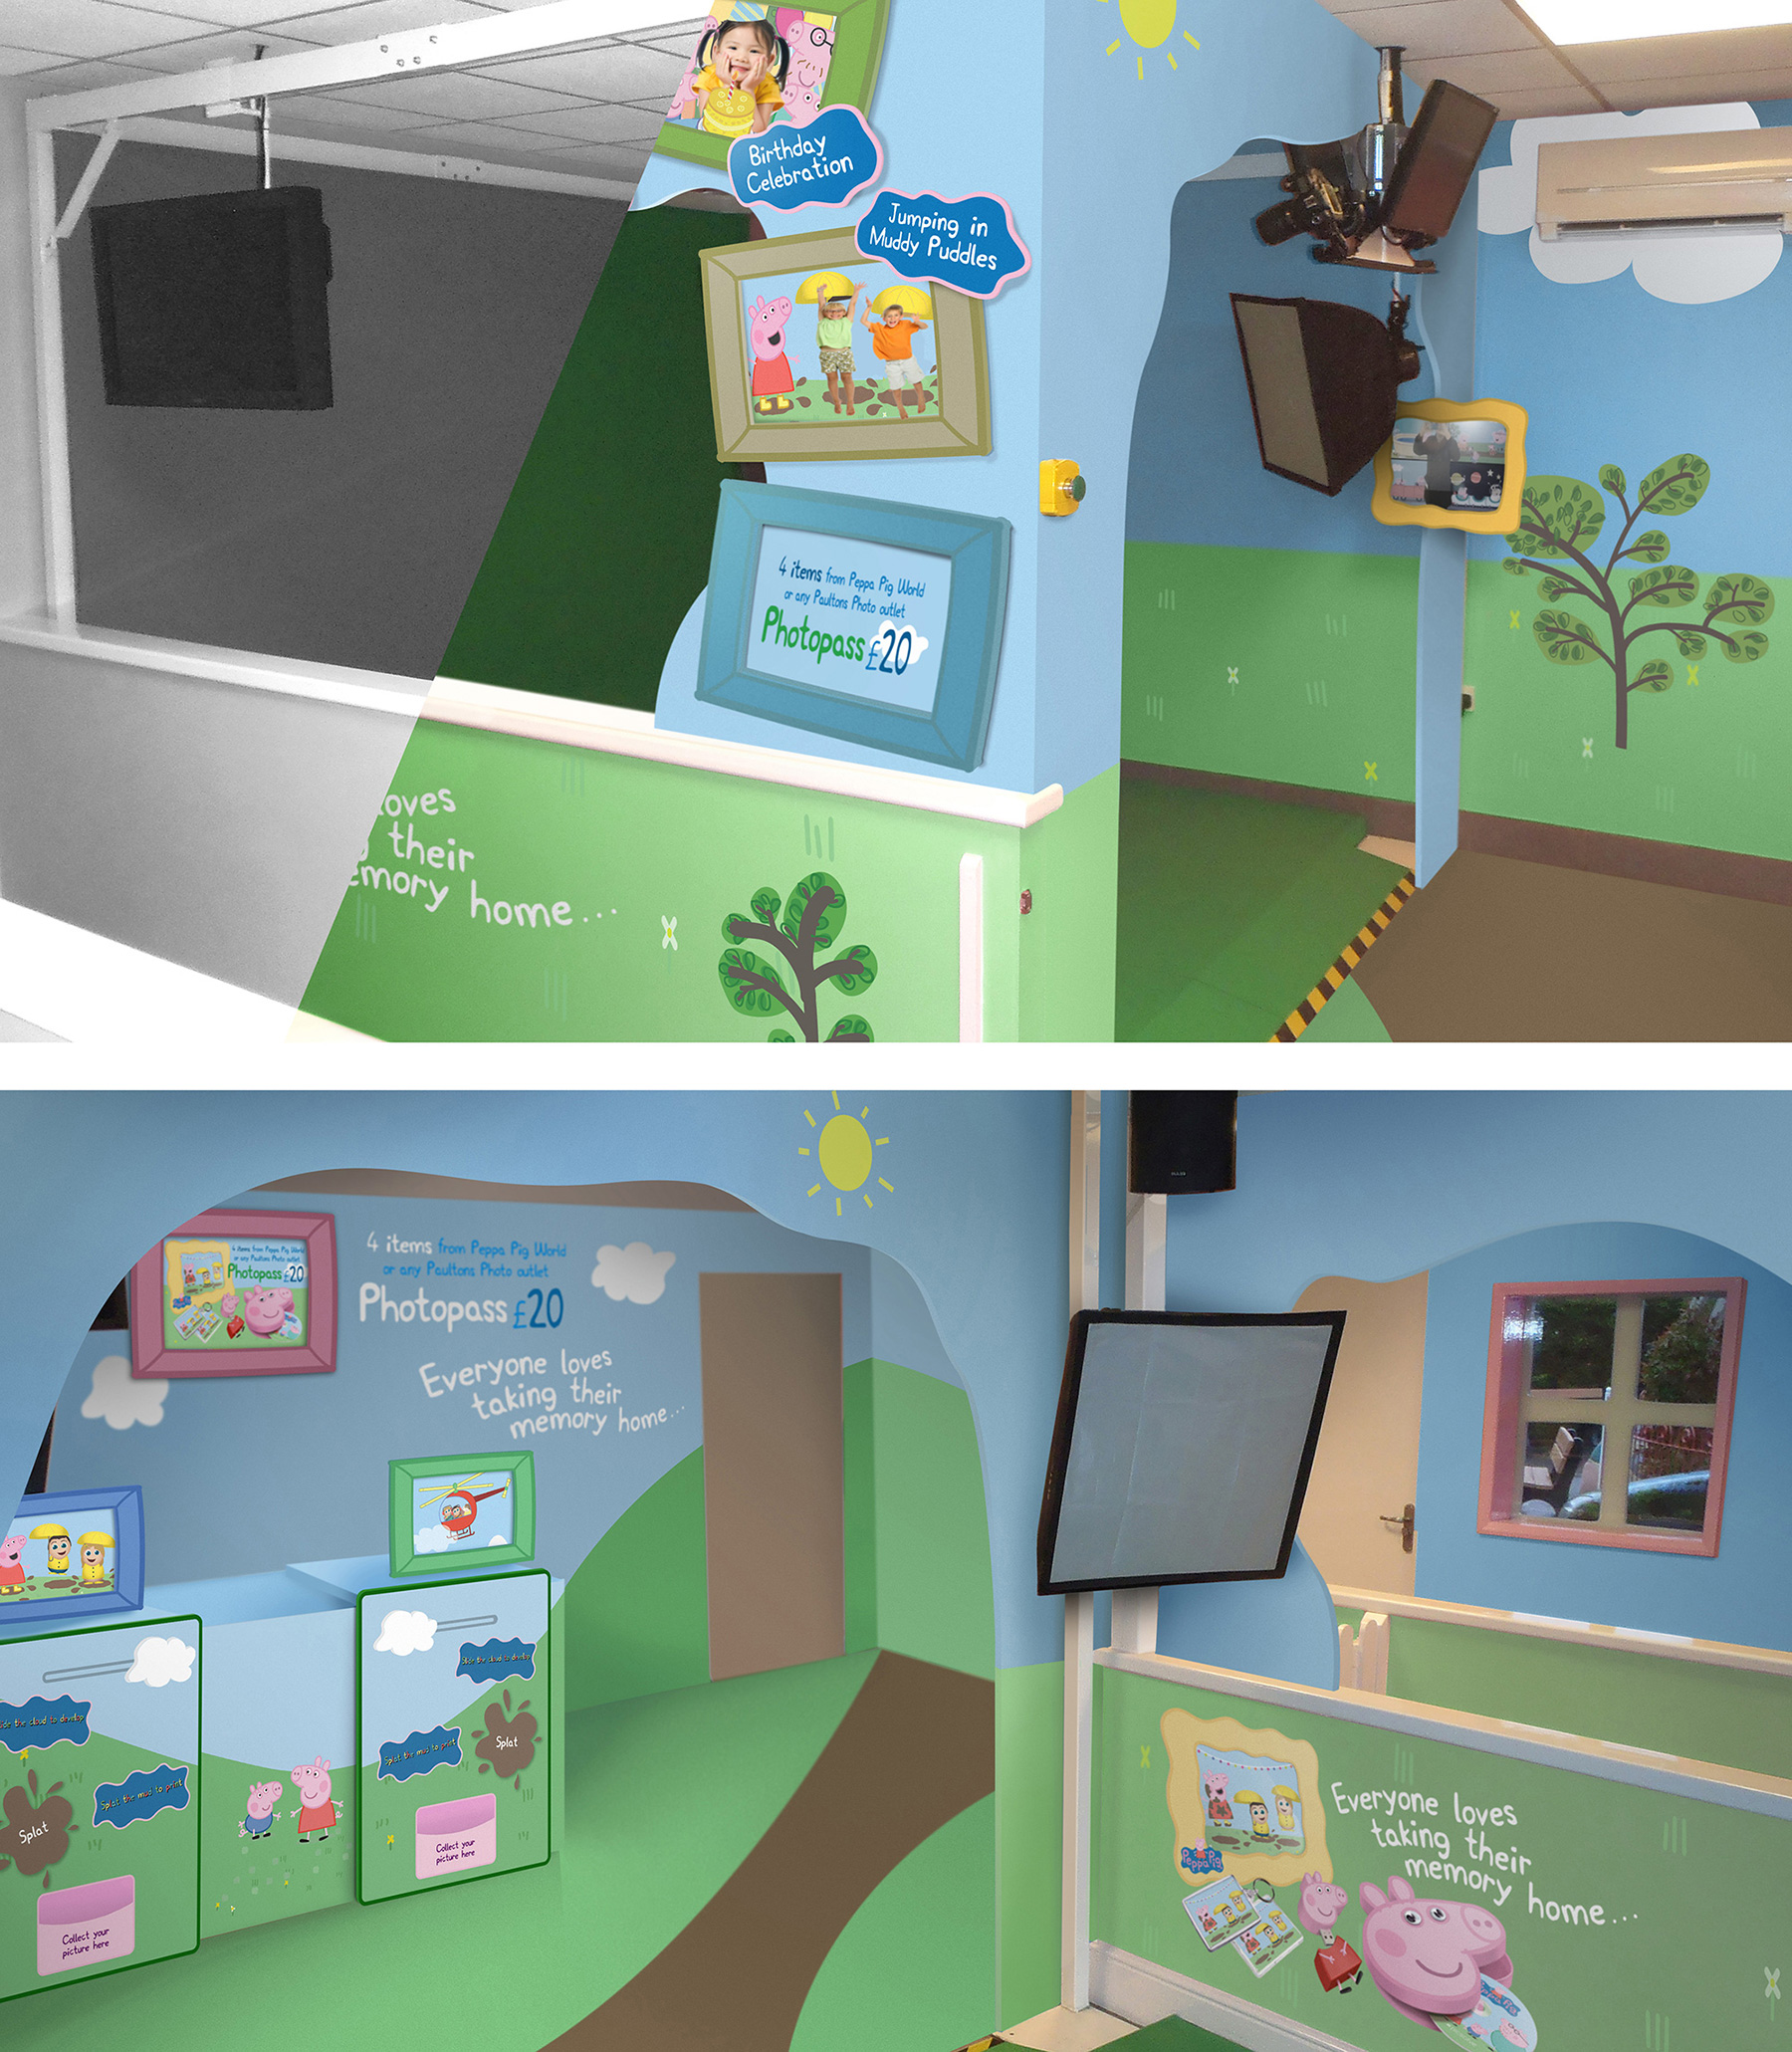 Theming for Peppa Pig at Paulton's Park, created by Katapult